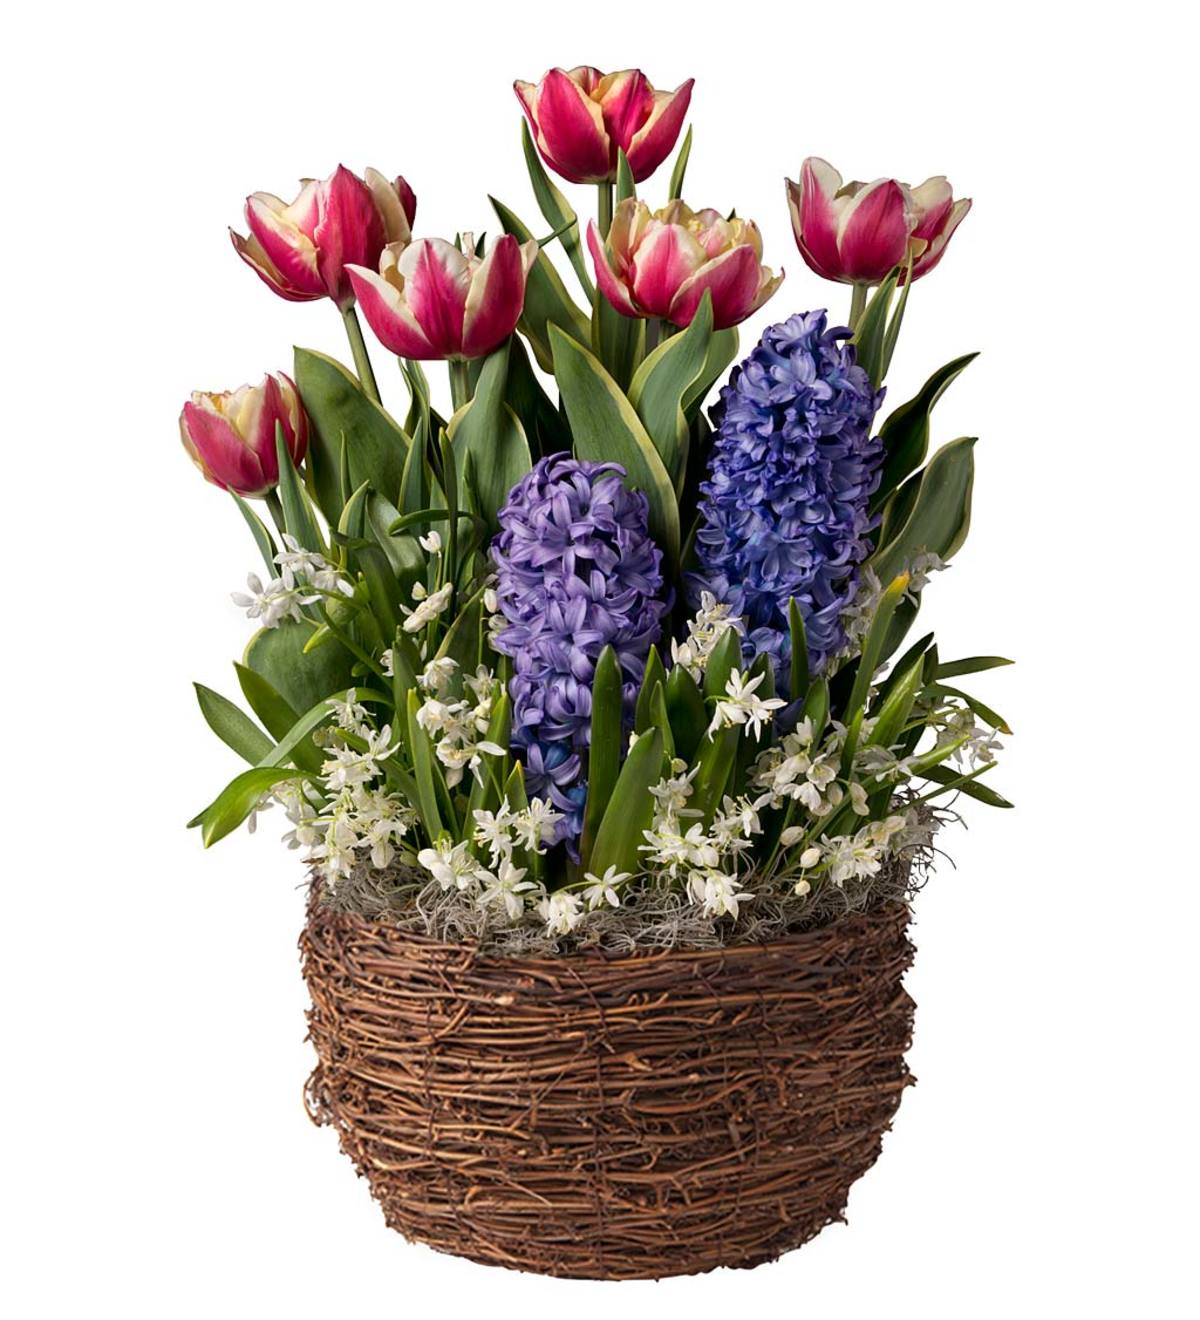 Tulip, Hyacinth and Star of Bethlehem Bulb Garden - Ships January-June 2019